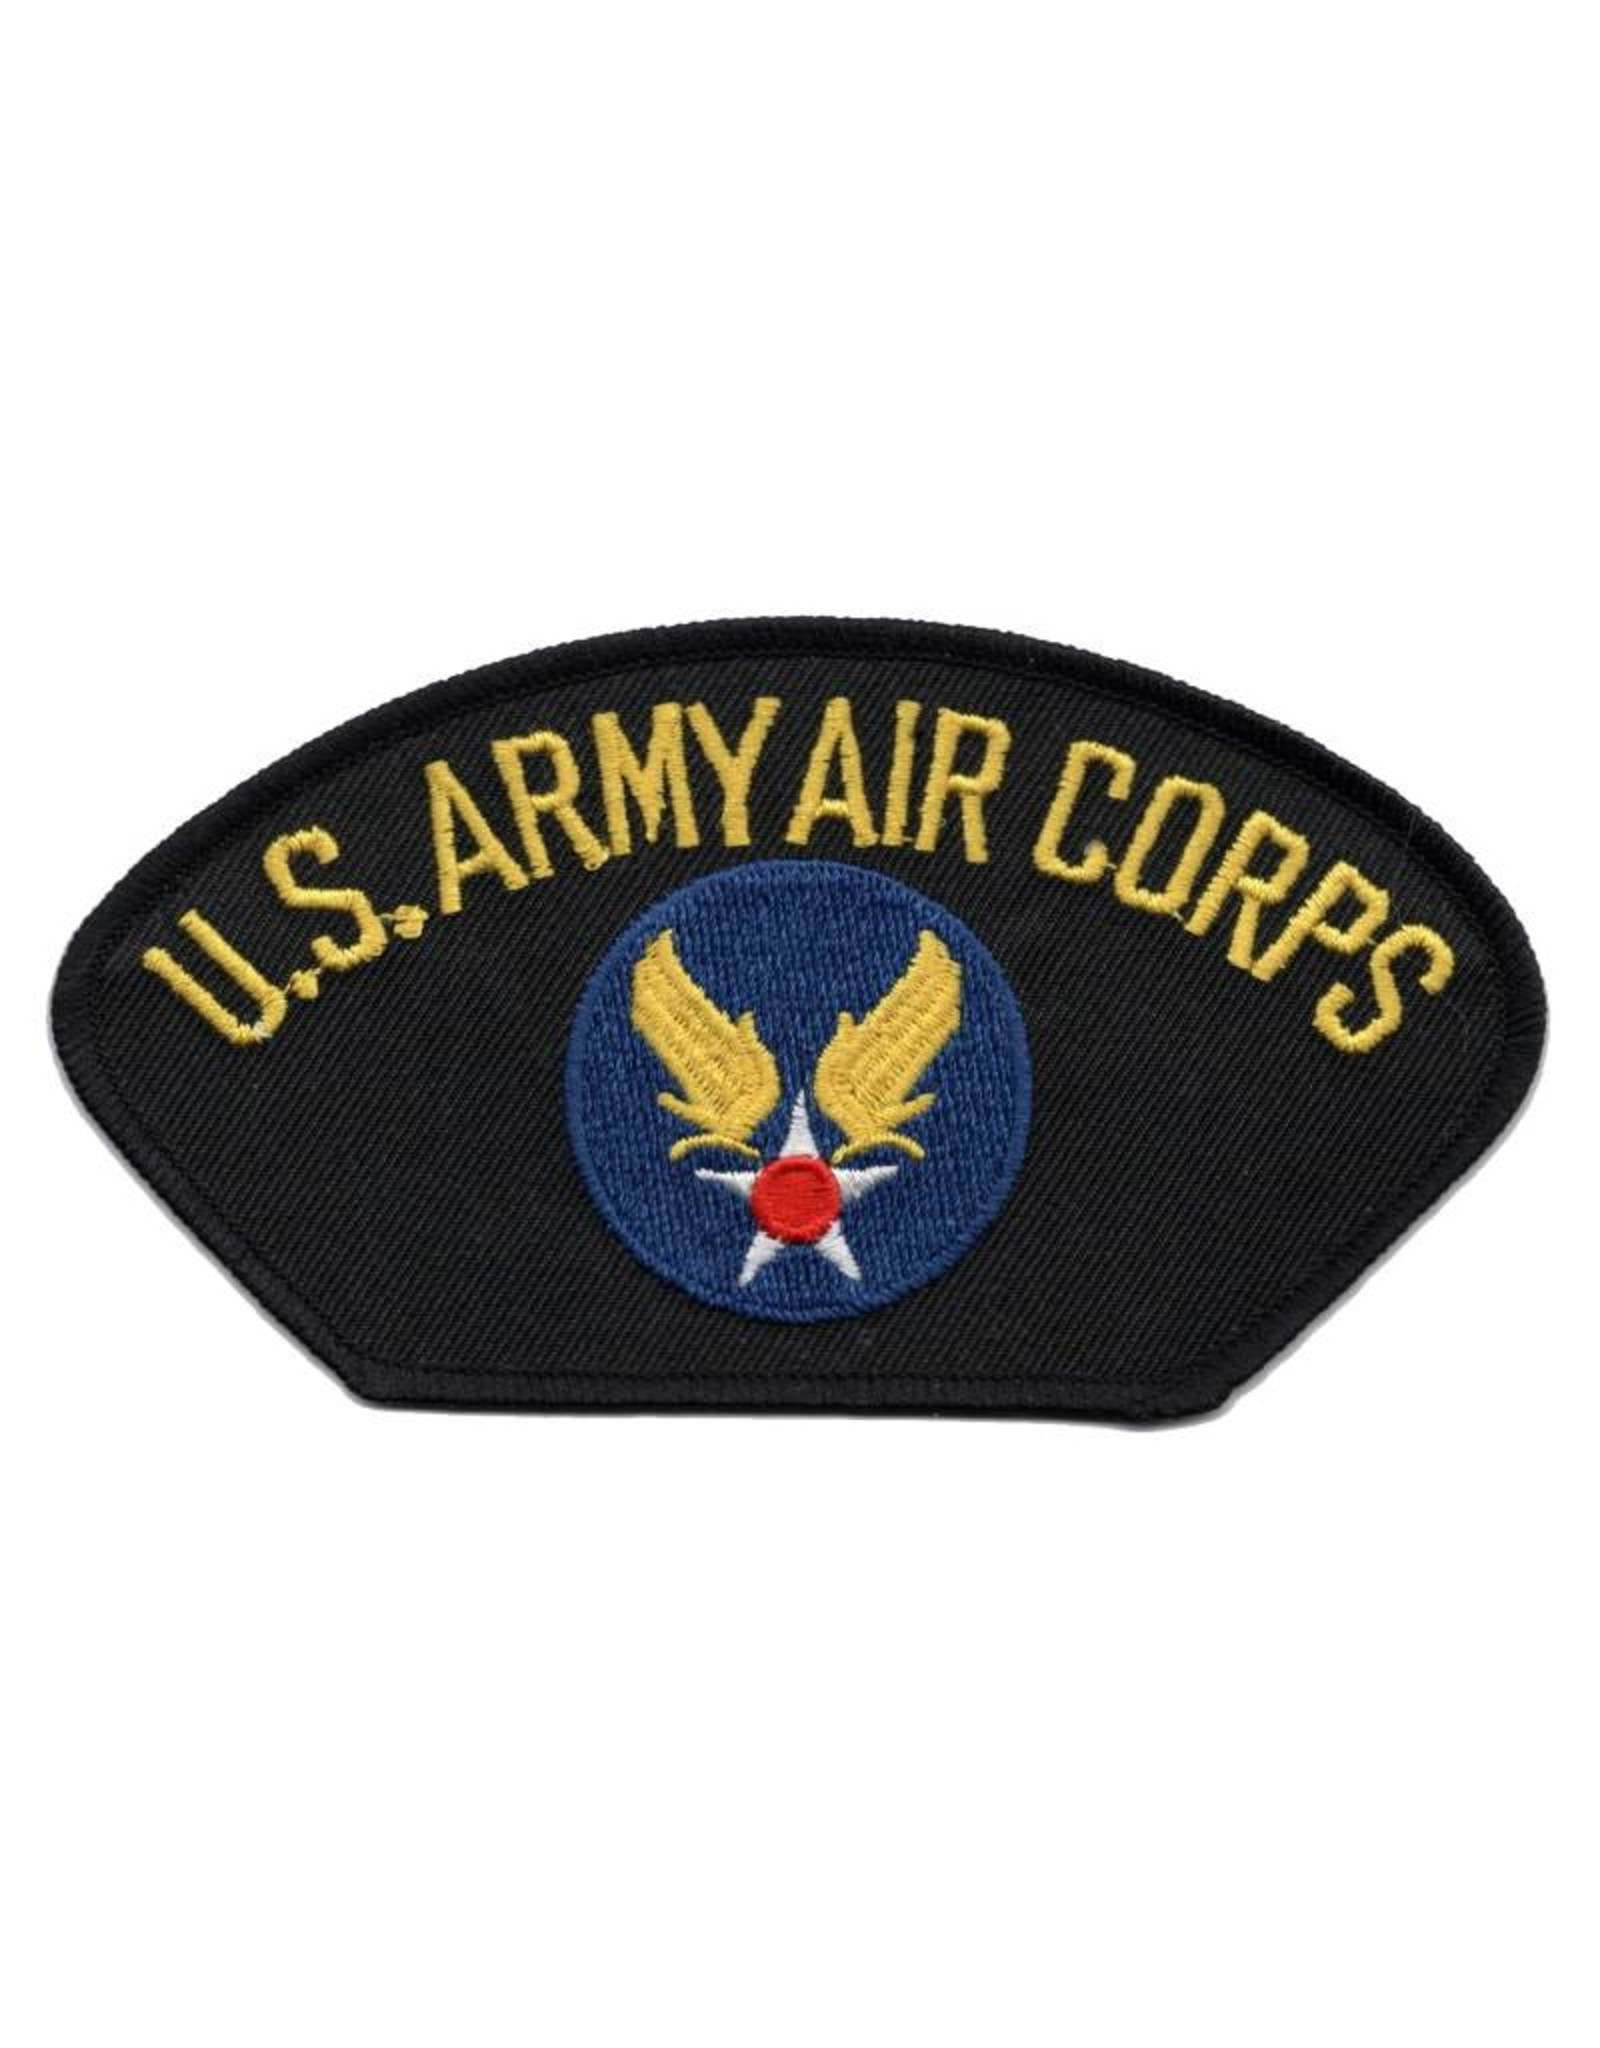 MidMil Embroidered Army Air Corp Patch with Emblem